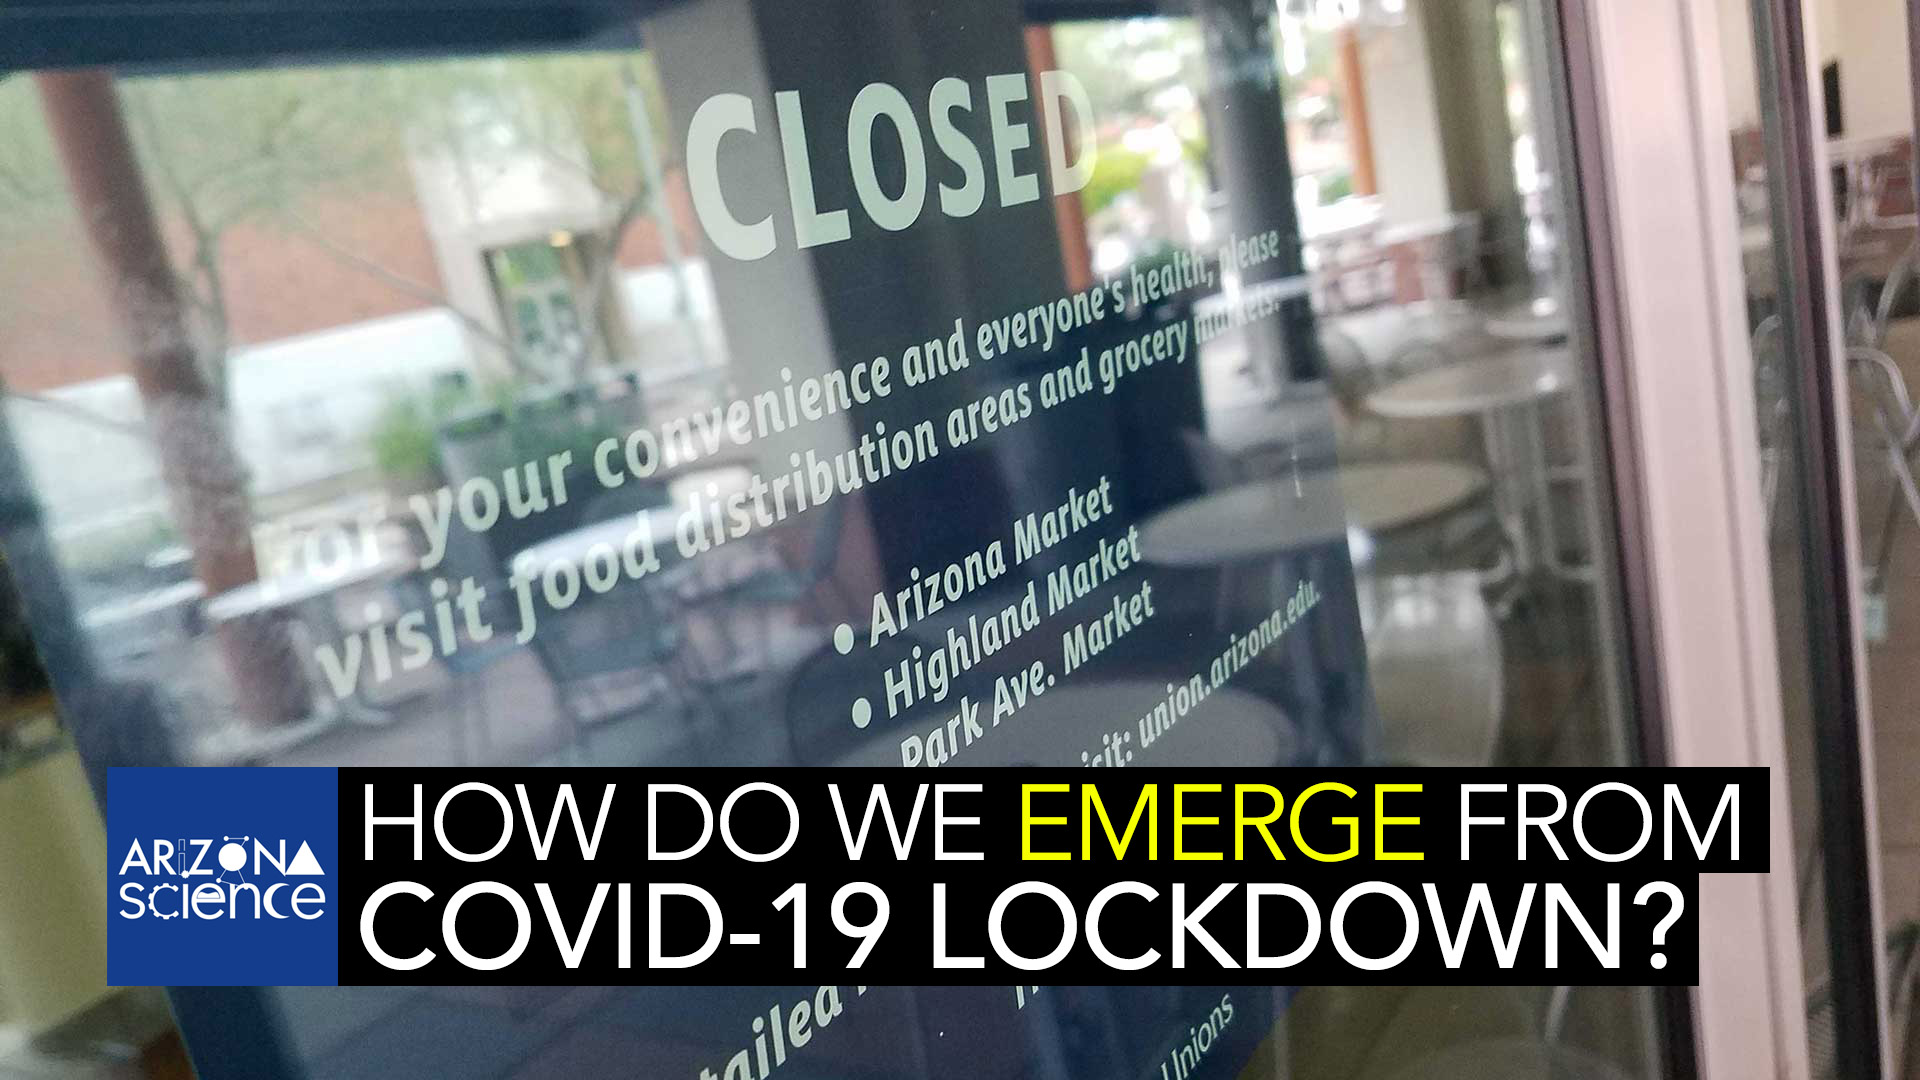 A closed sign during the COVID-19 lockdown at the University of Arizona student union.